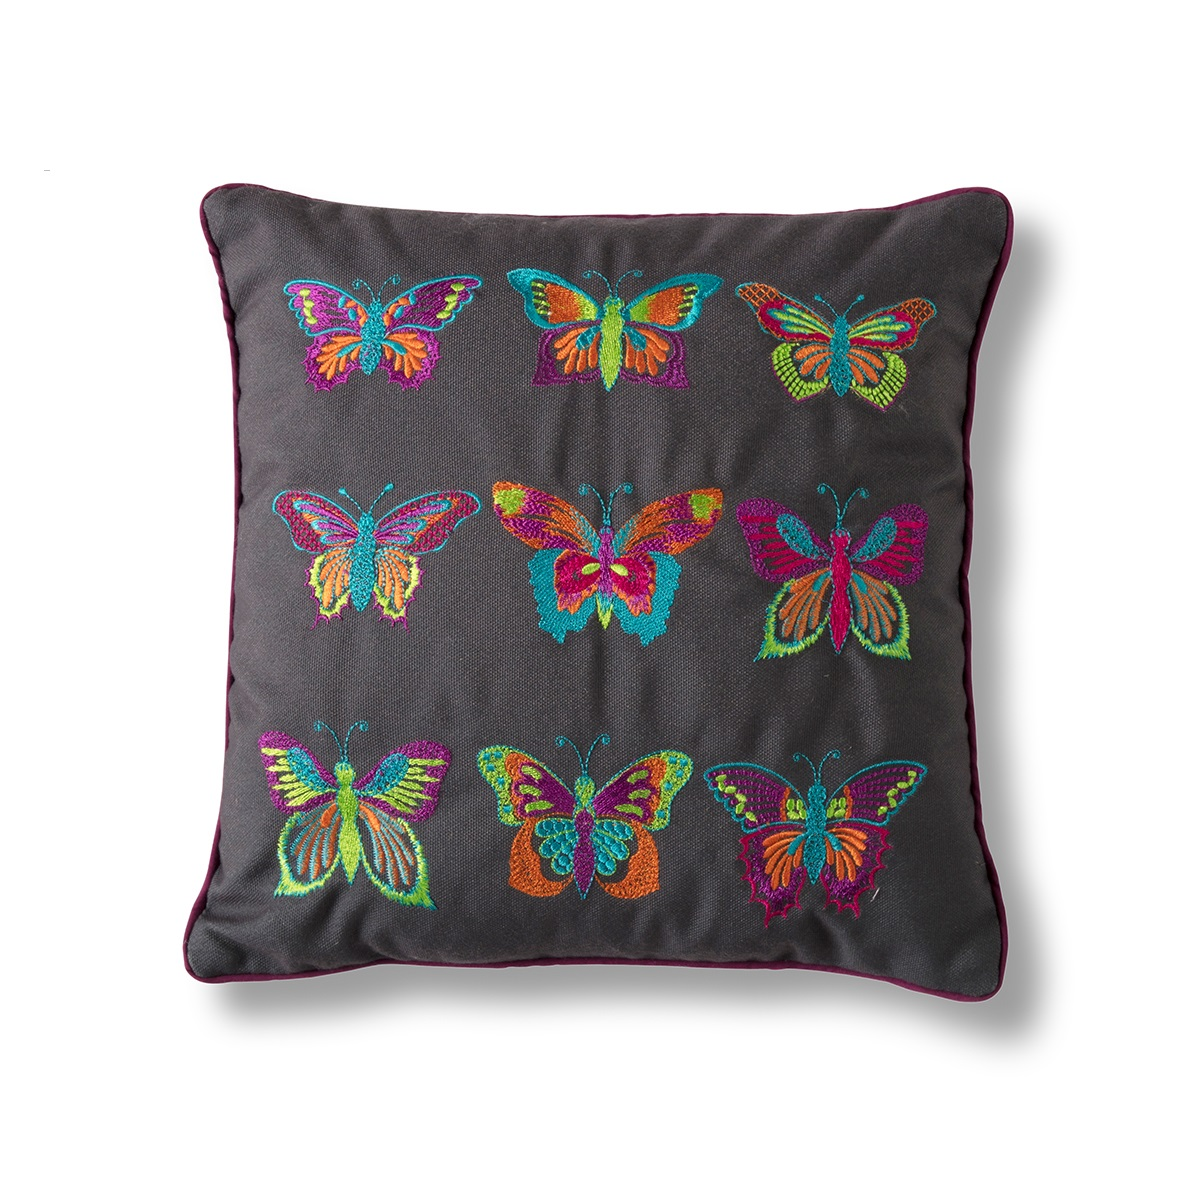 Image of Embroidered Butterflies Cushion - Grey